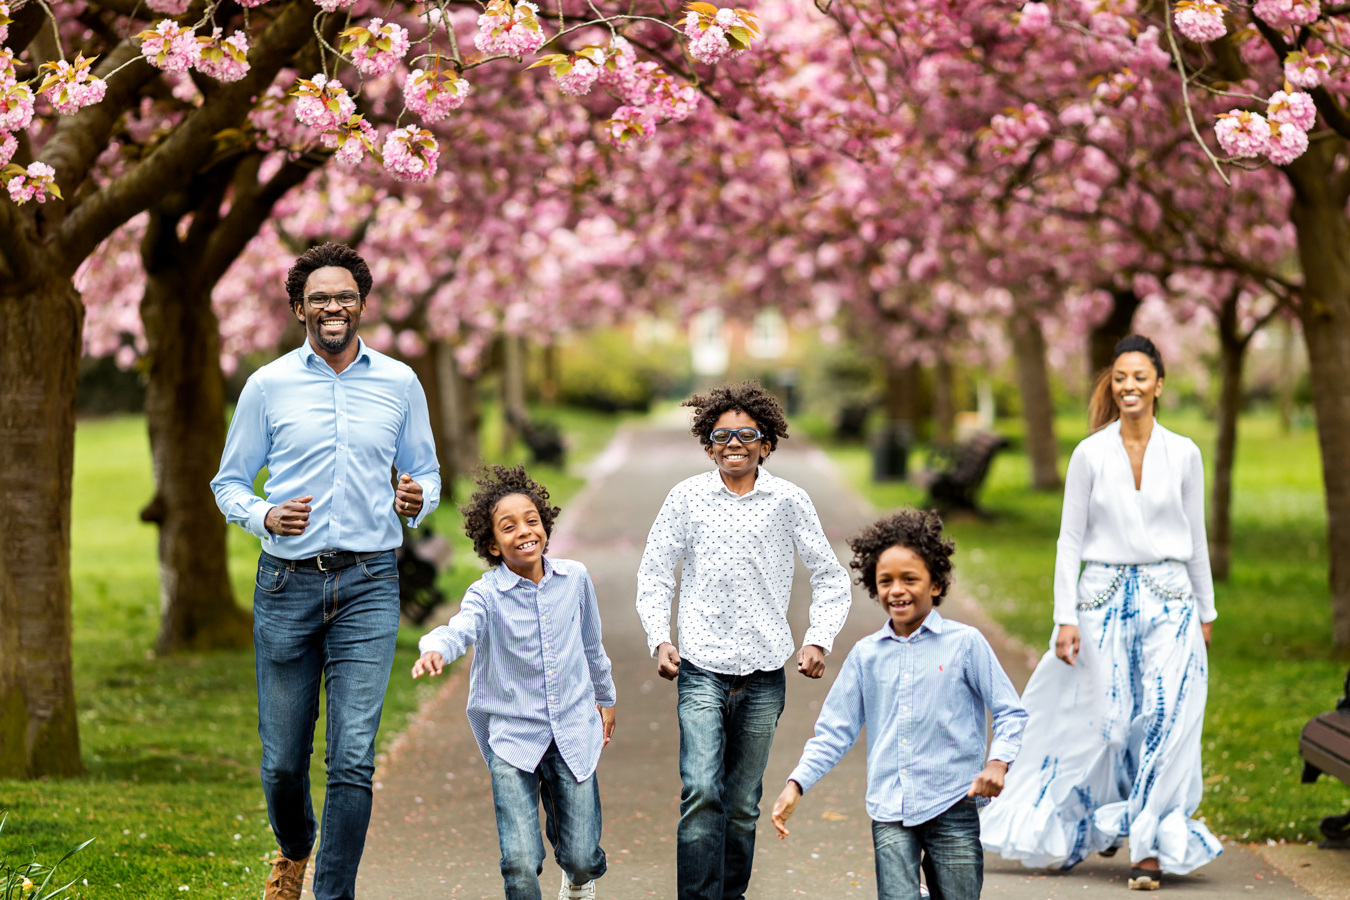 Sweet London Photography 187 Cherry Blossom Spring Family